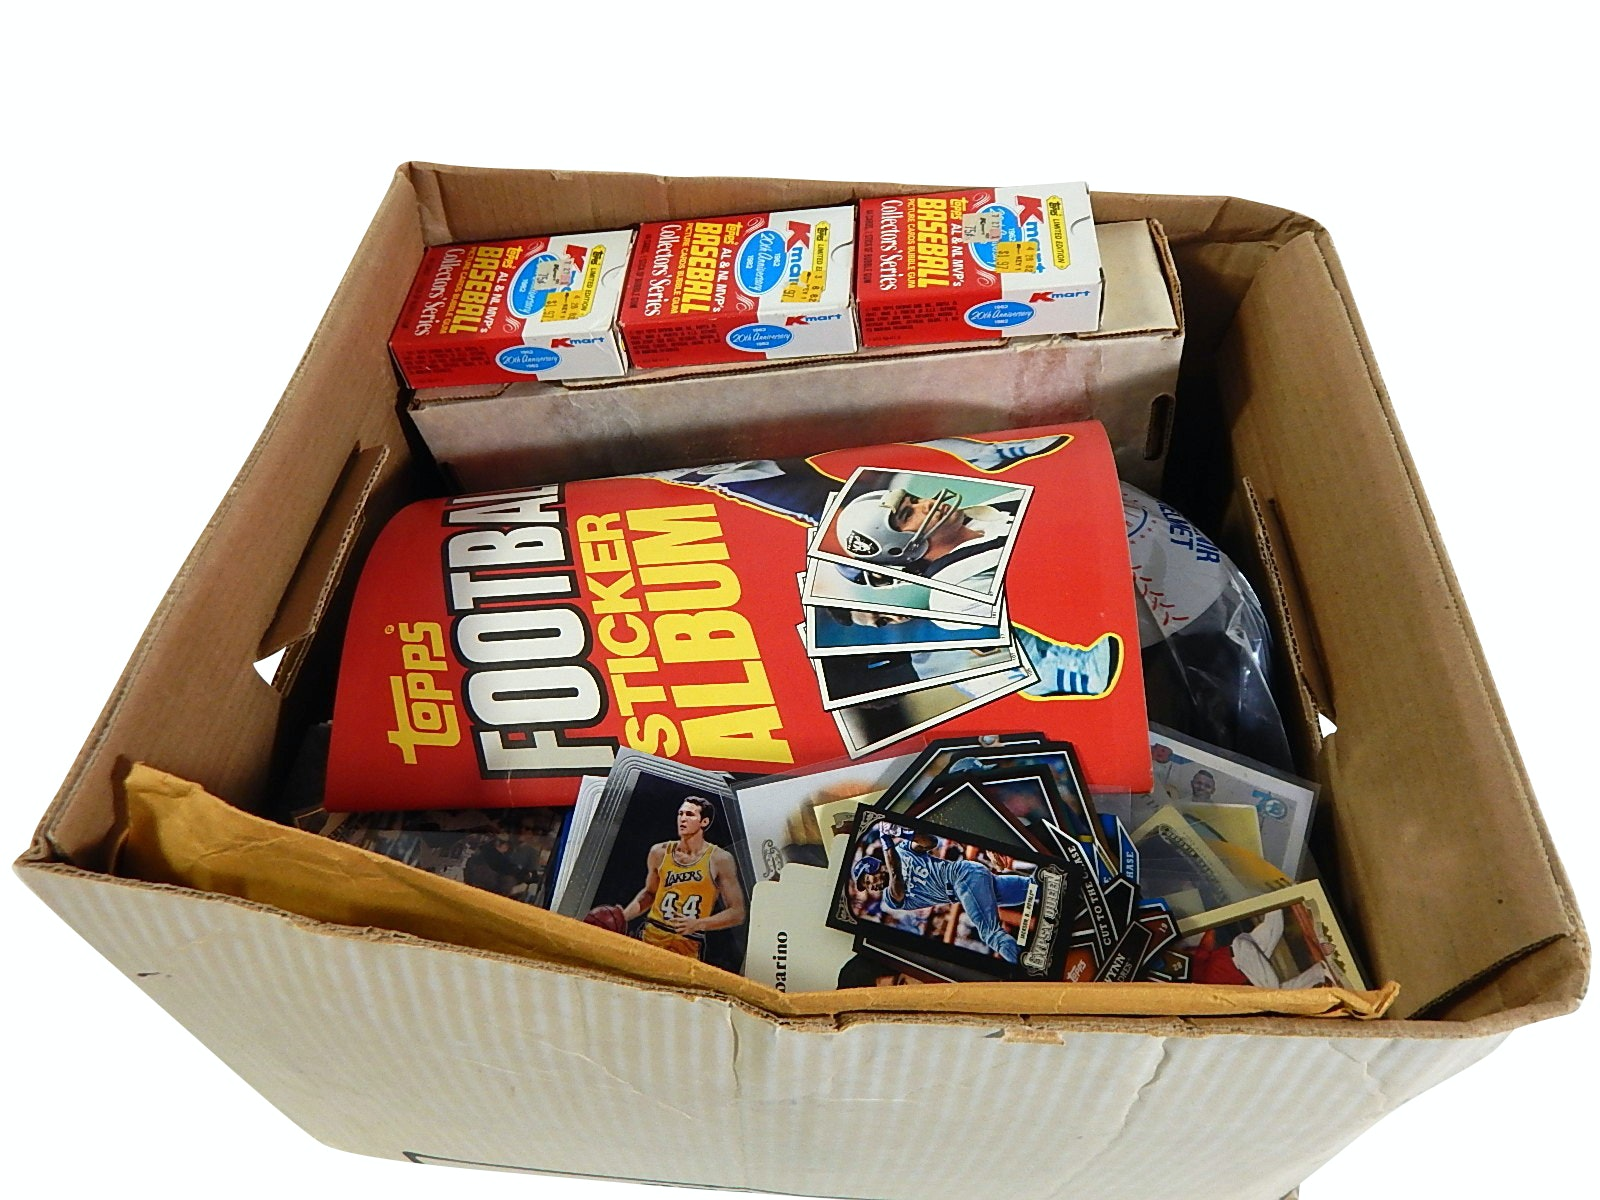 Box Lot of Baseball and Basketball Cards and Collectibles - Over 2000 Count